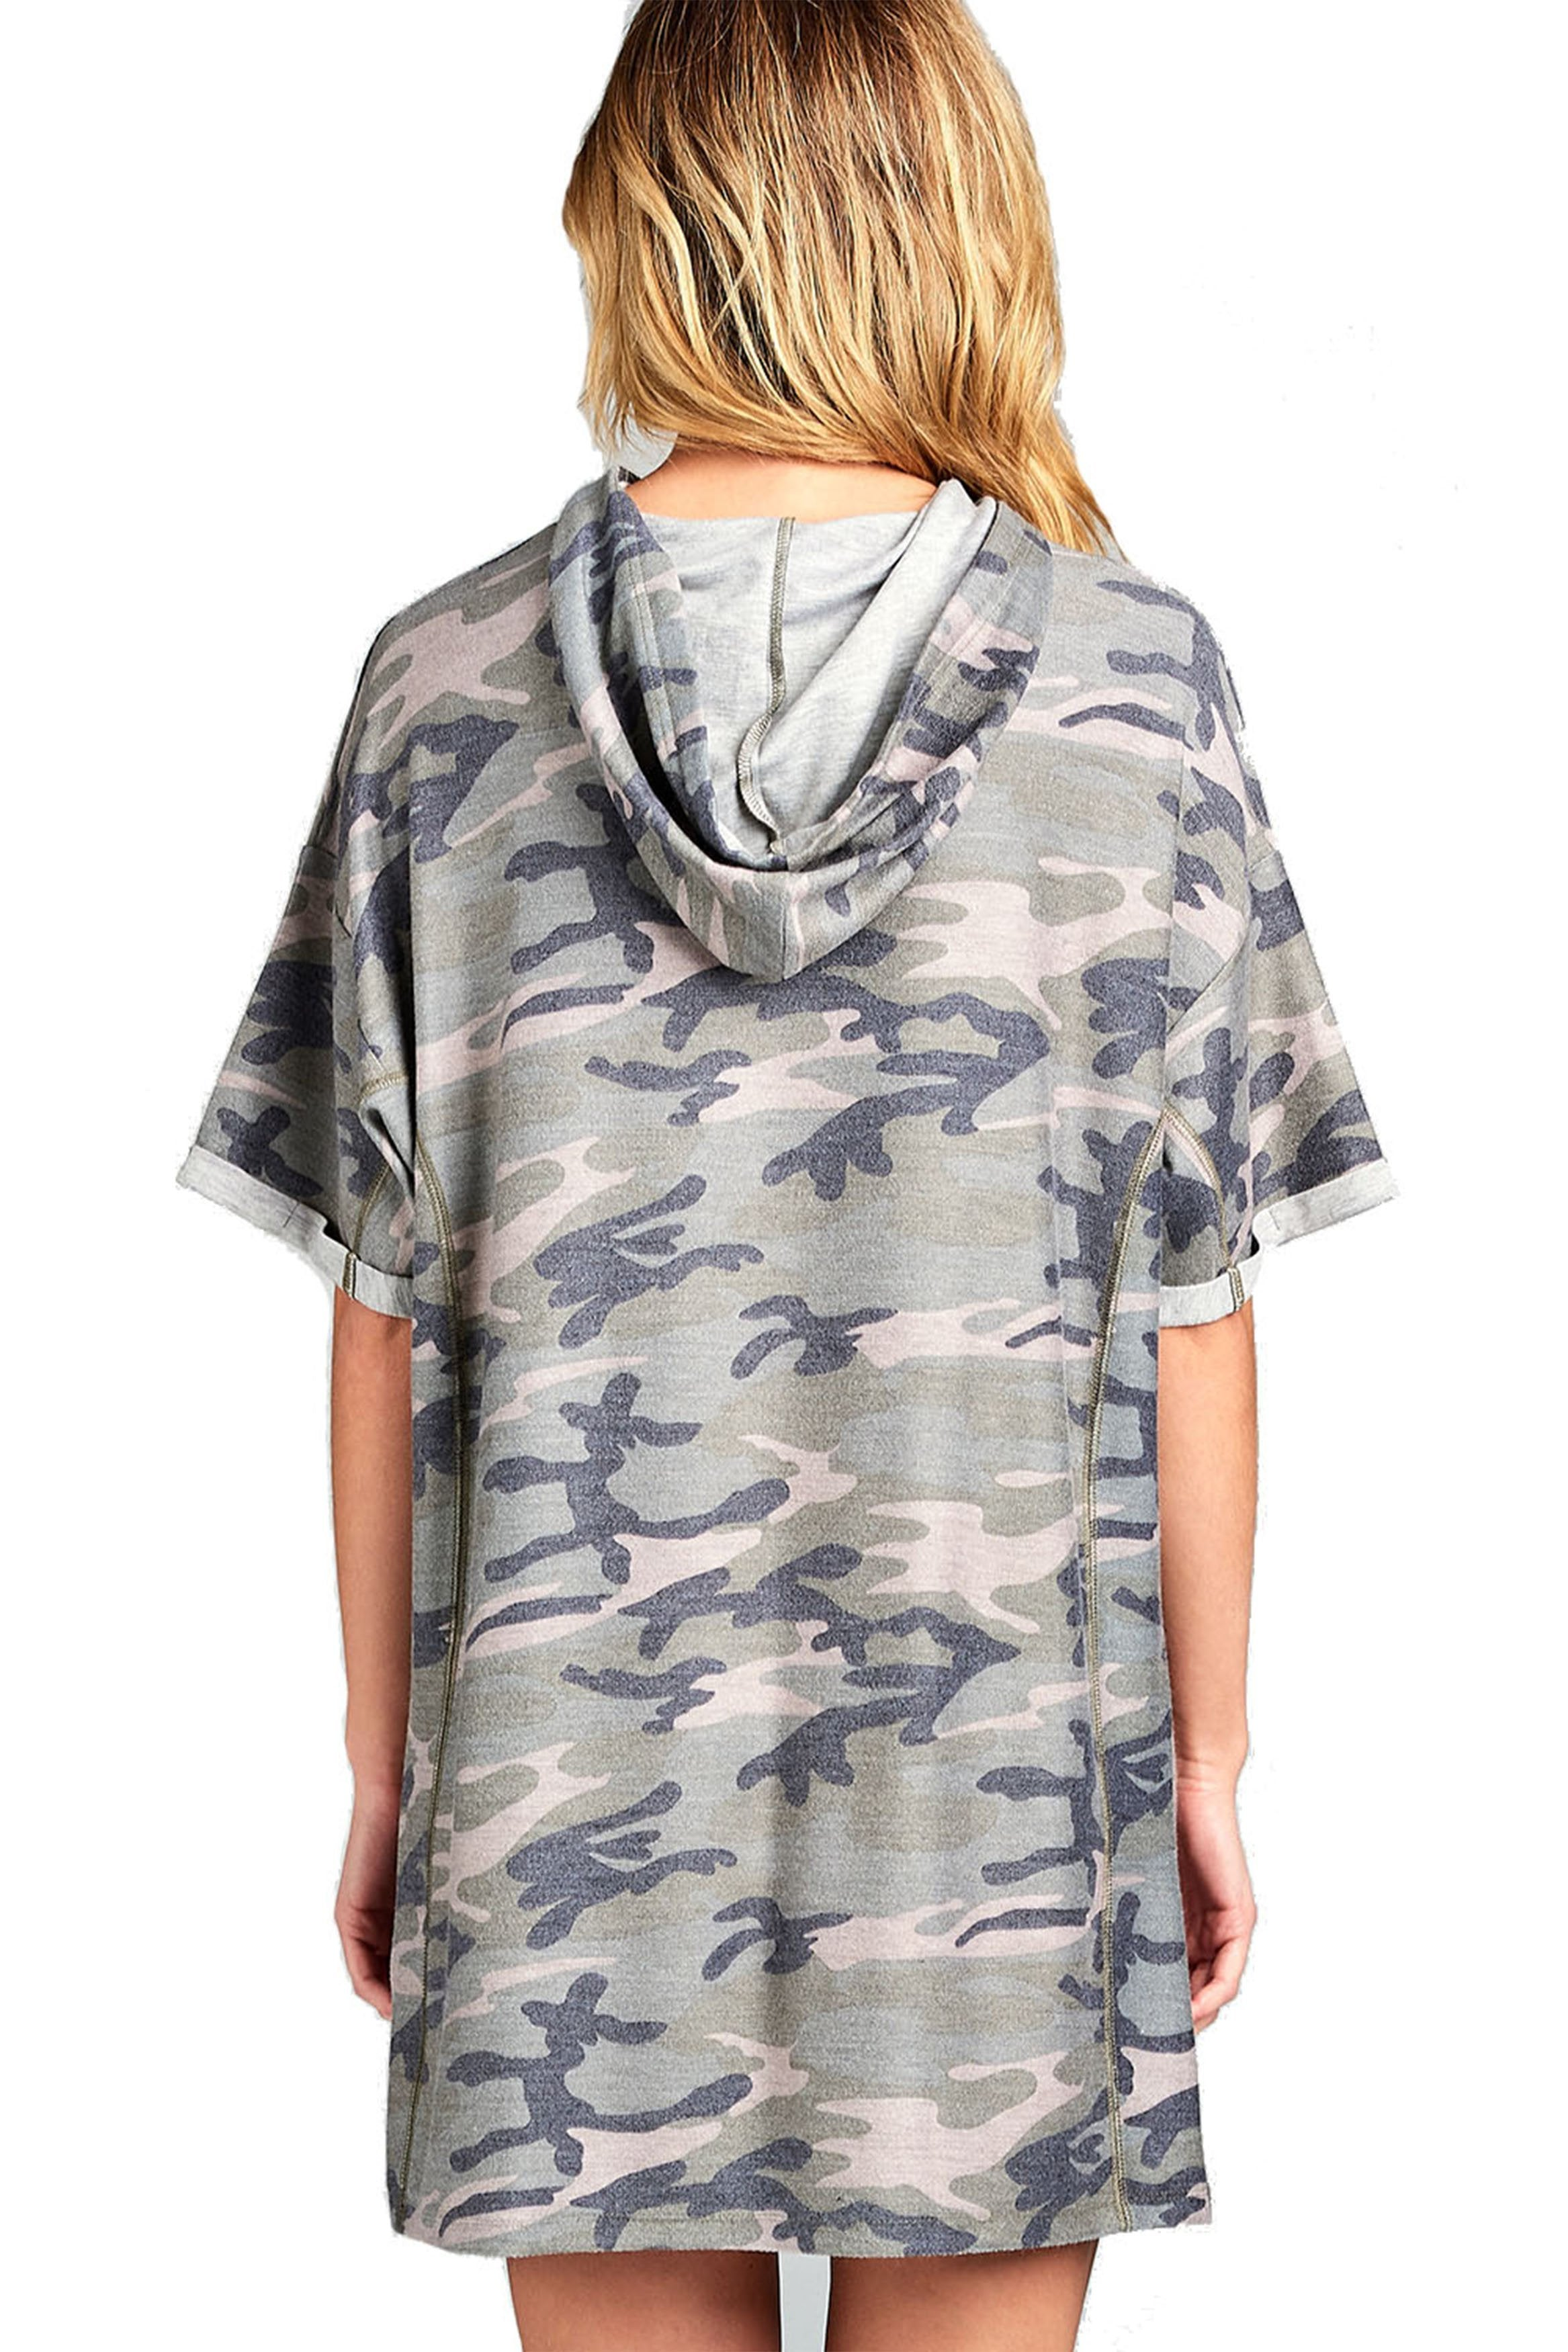 Short Sleeve Hooded Oversized Loose Fit Casual All Over Camo Print T-Shirt Dress